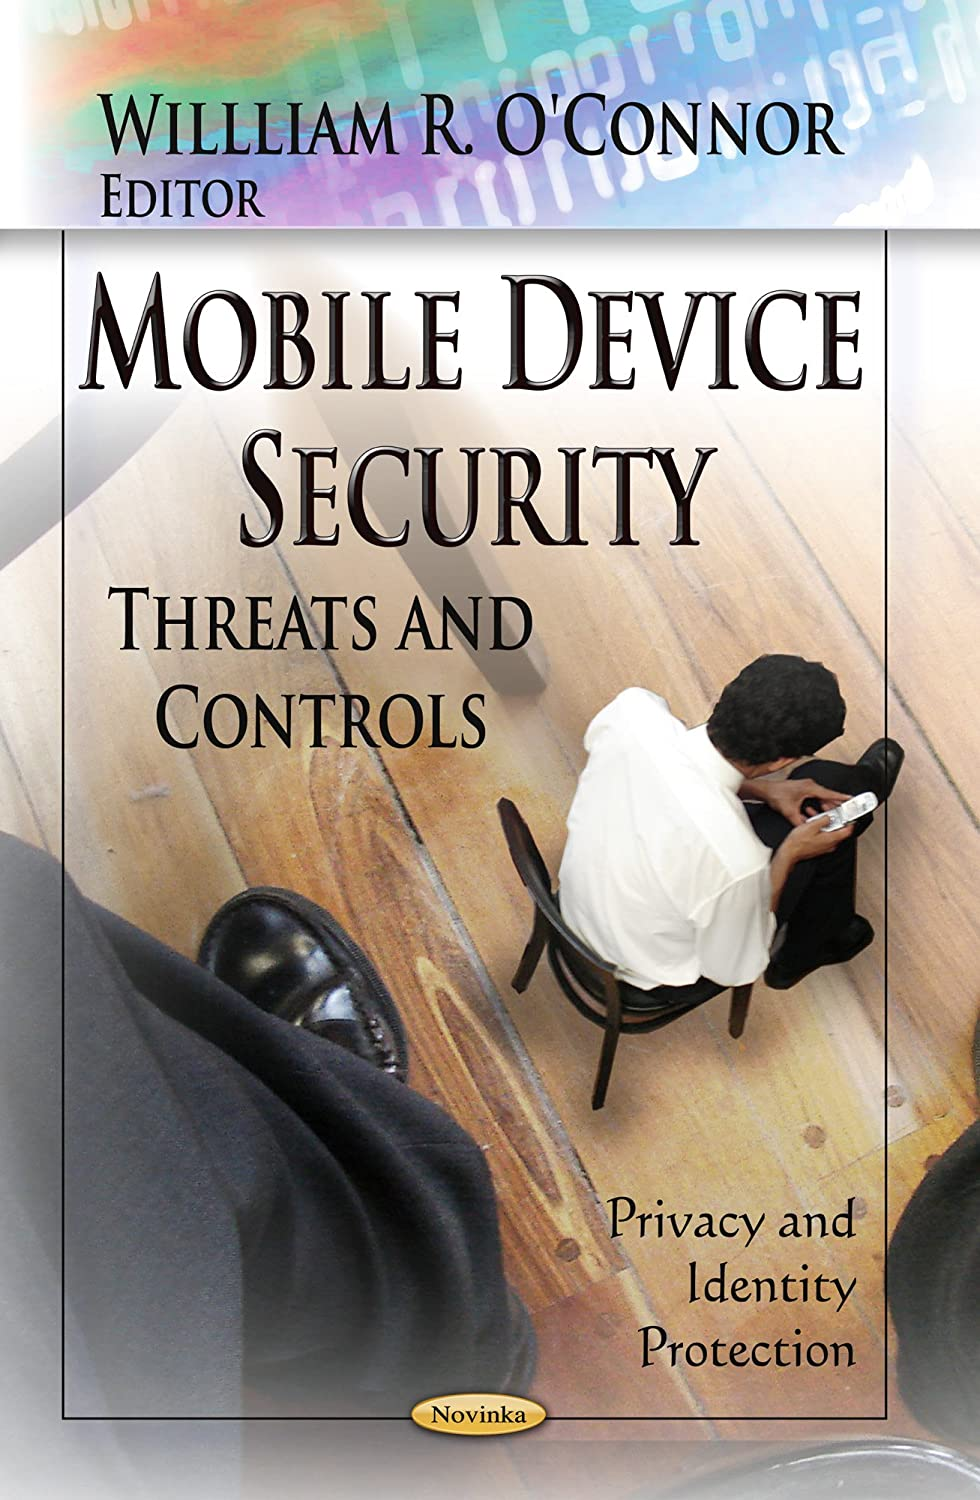 Mobile Device Security: Threats and Controls (Privacy and Identity Protection) William R. O'connor